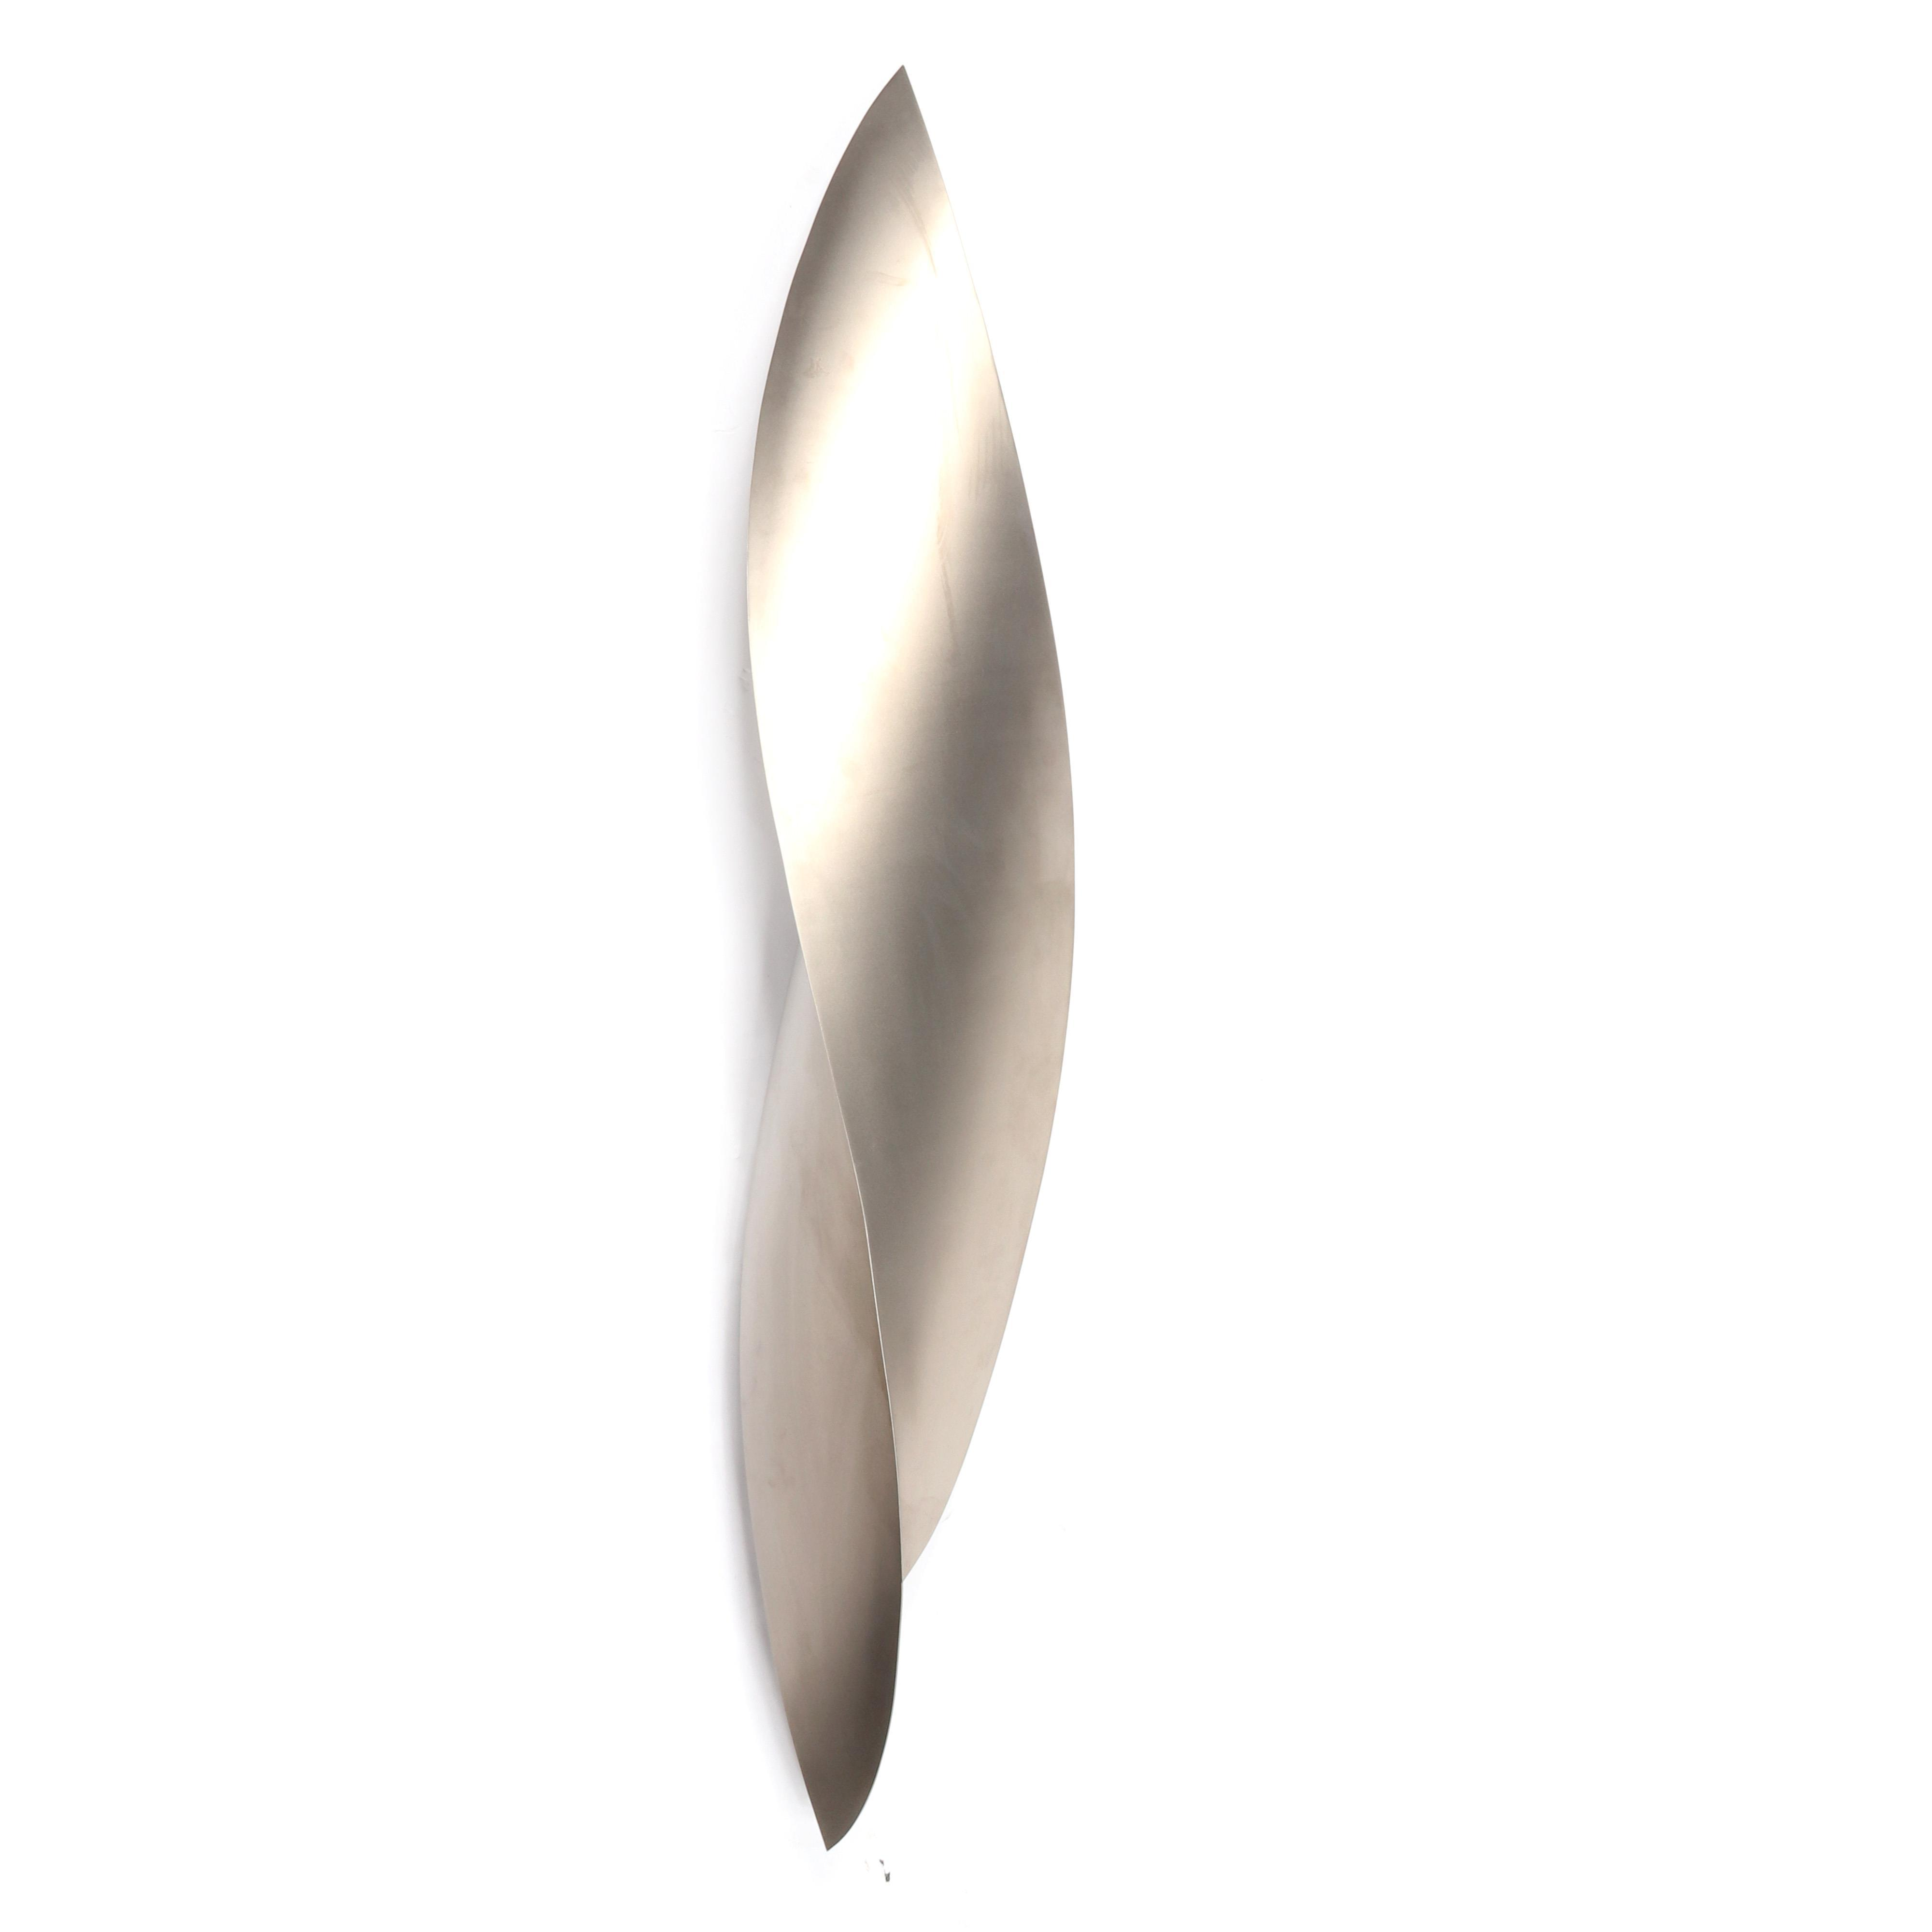 """Juan Asensio, (Equadorian, b.1959), Untitled 2007, stainless steel sculpture, Approximately 70""""H x 11""""W x 8 1/2""""D."""